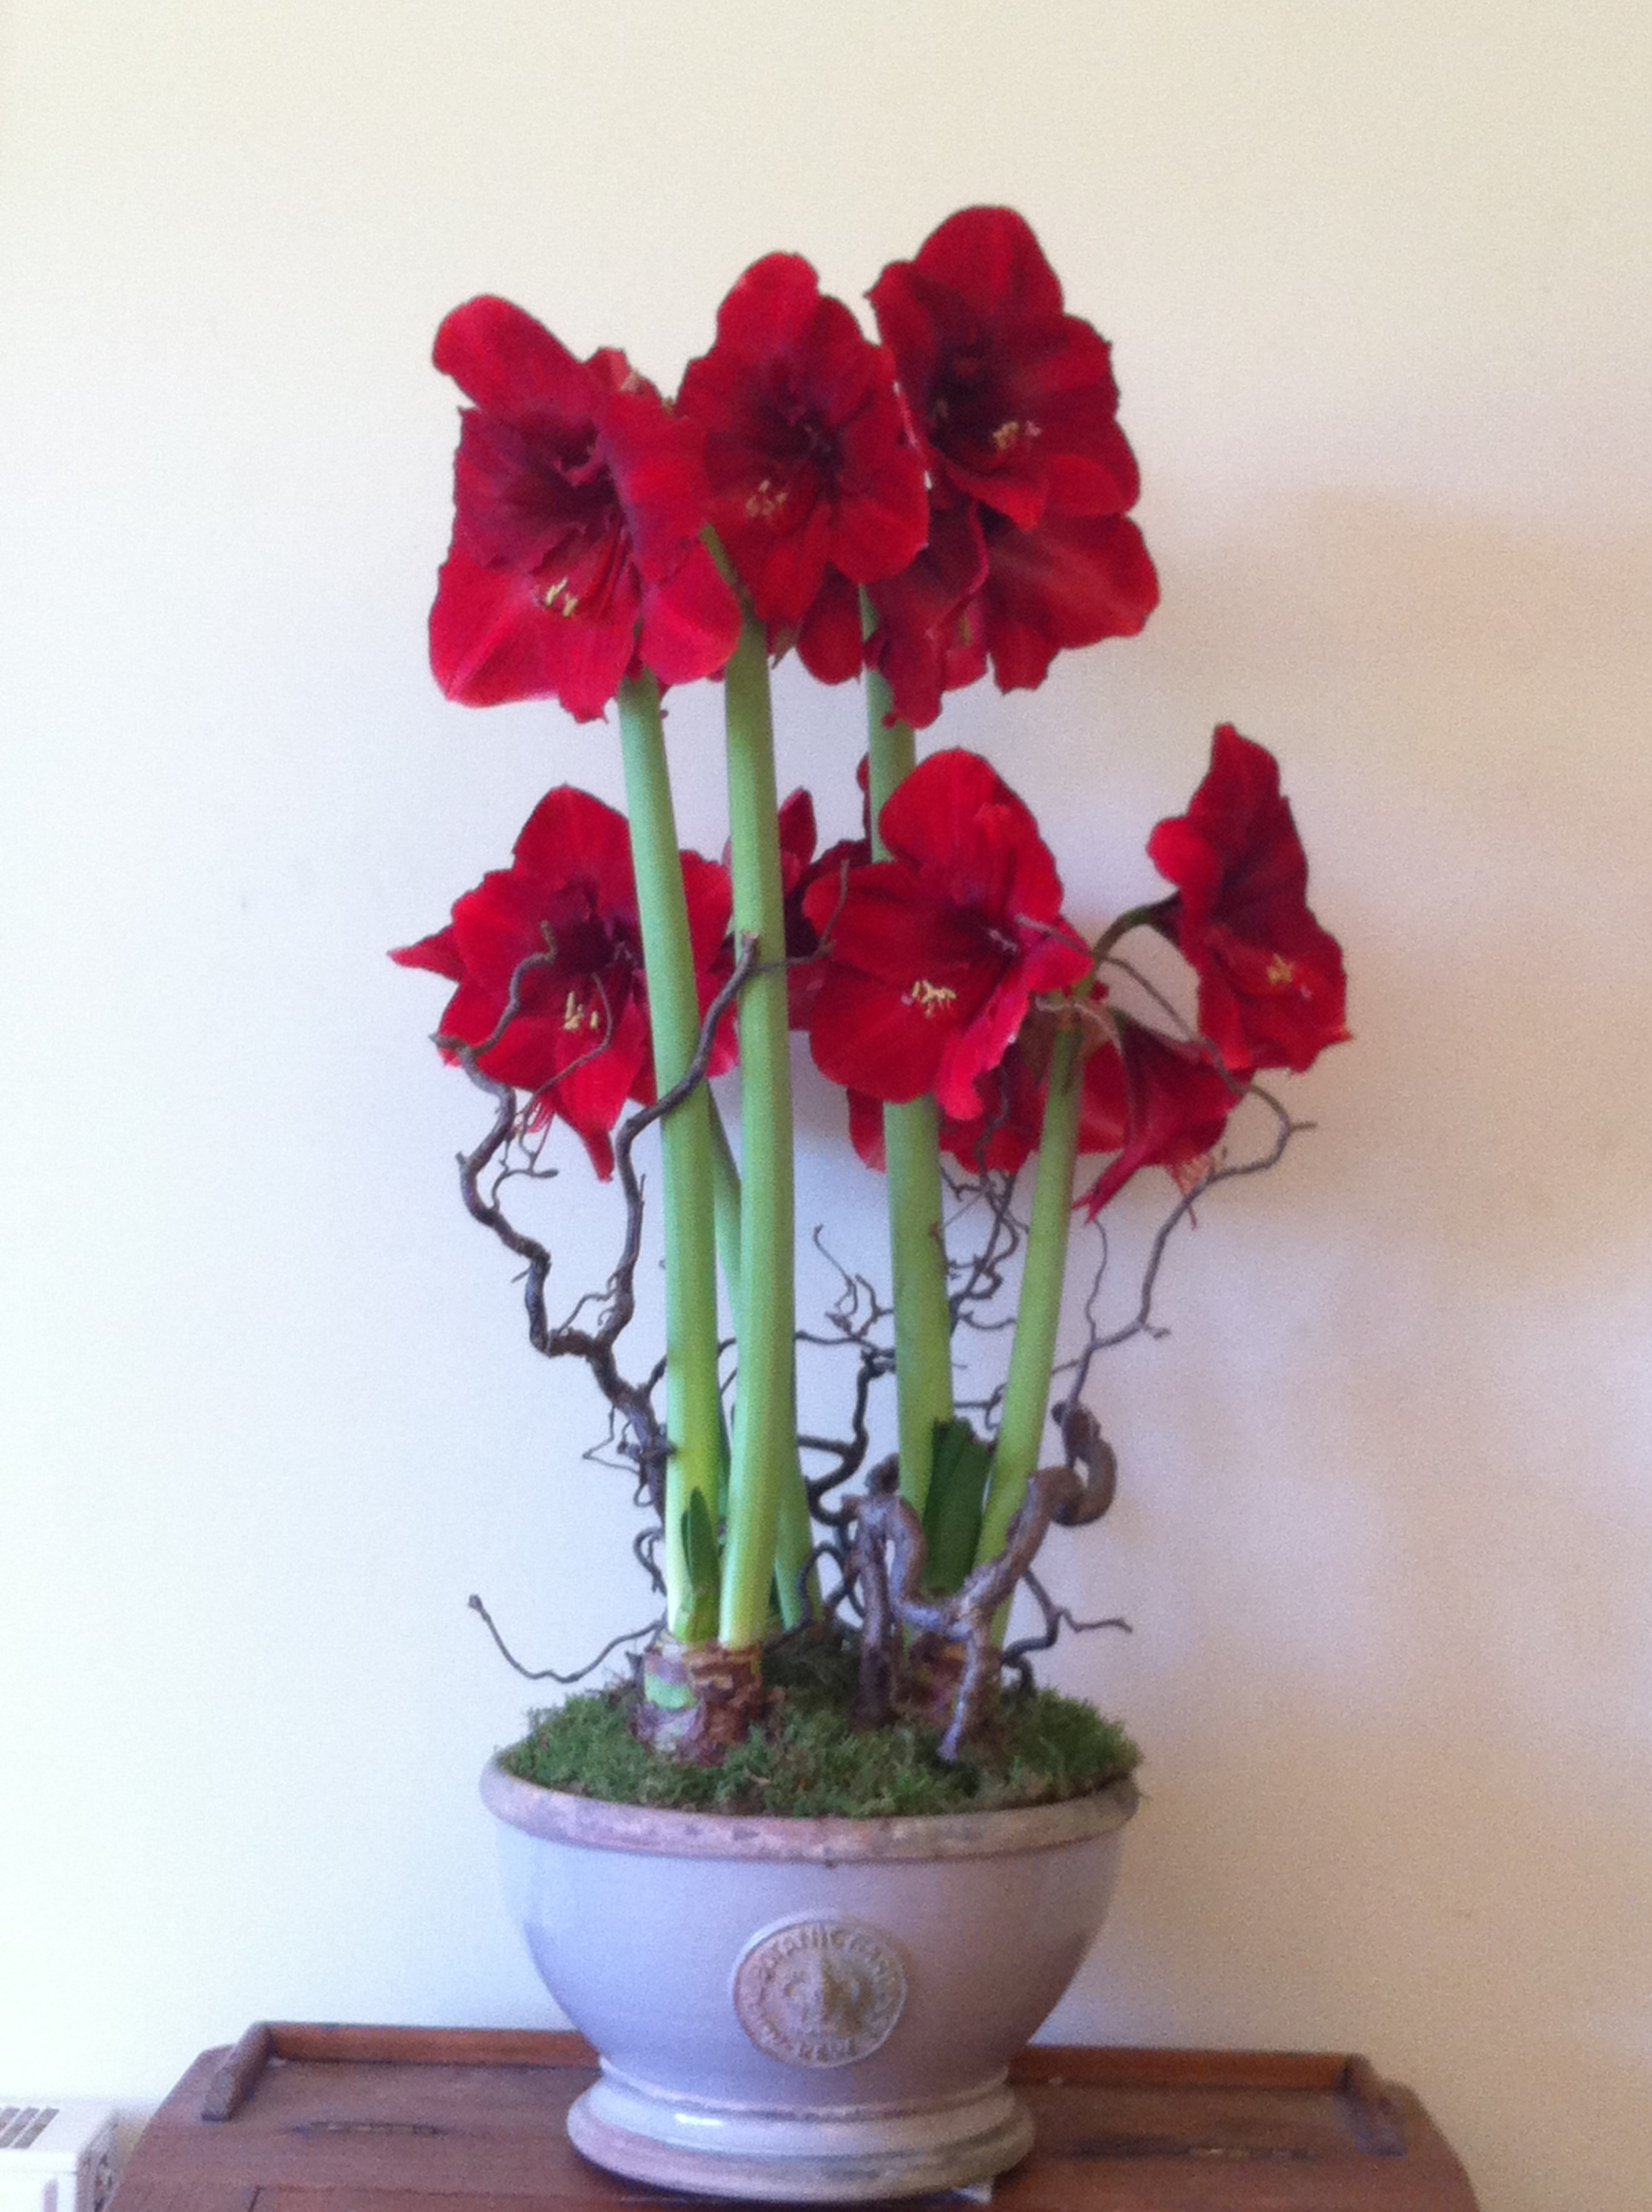 - Large Almond Kew bowl planted with 3 Amaryllis. Only available for Christmas -£95